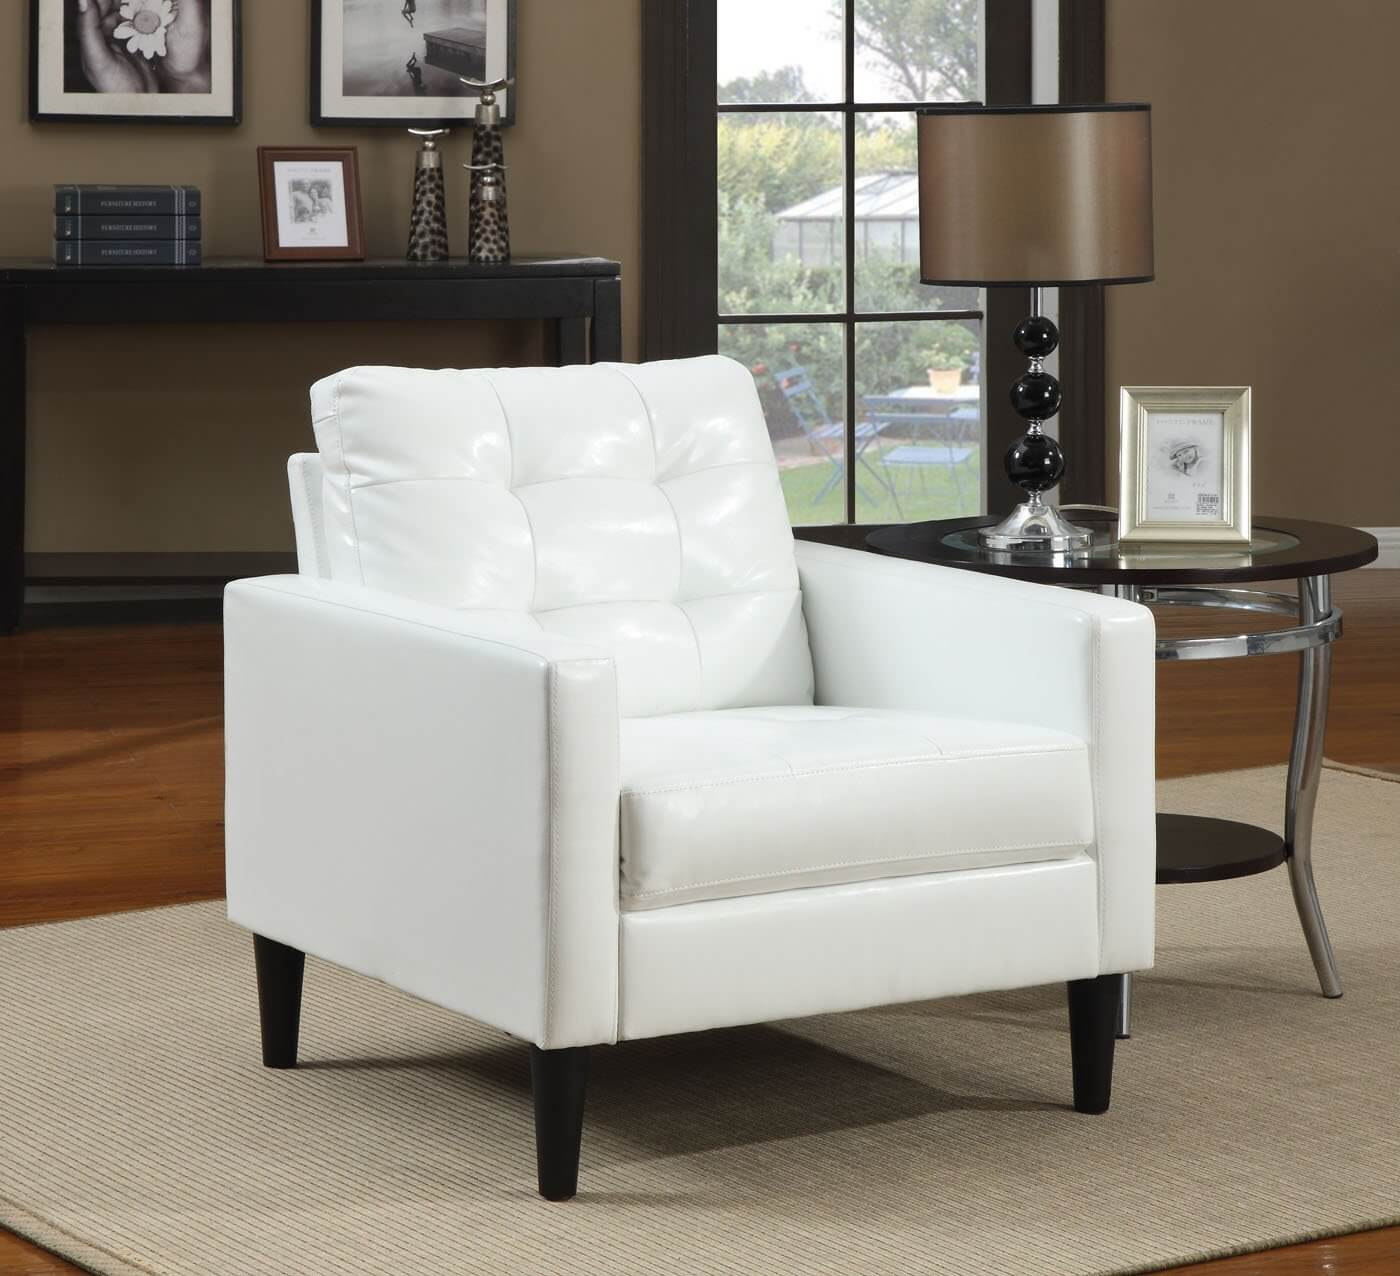 37 white modern accent chairs for the living room for Occasional chairs for living room